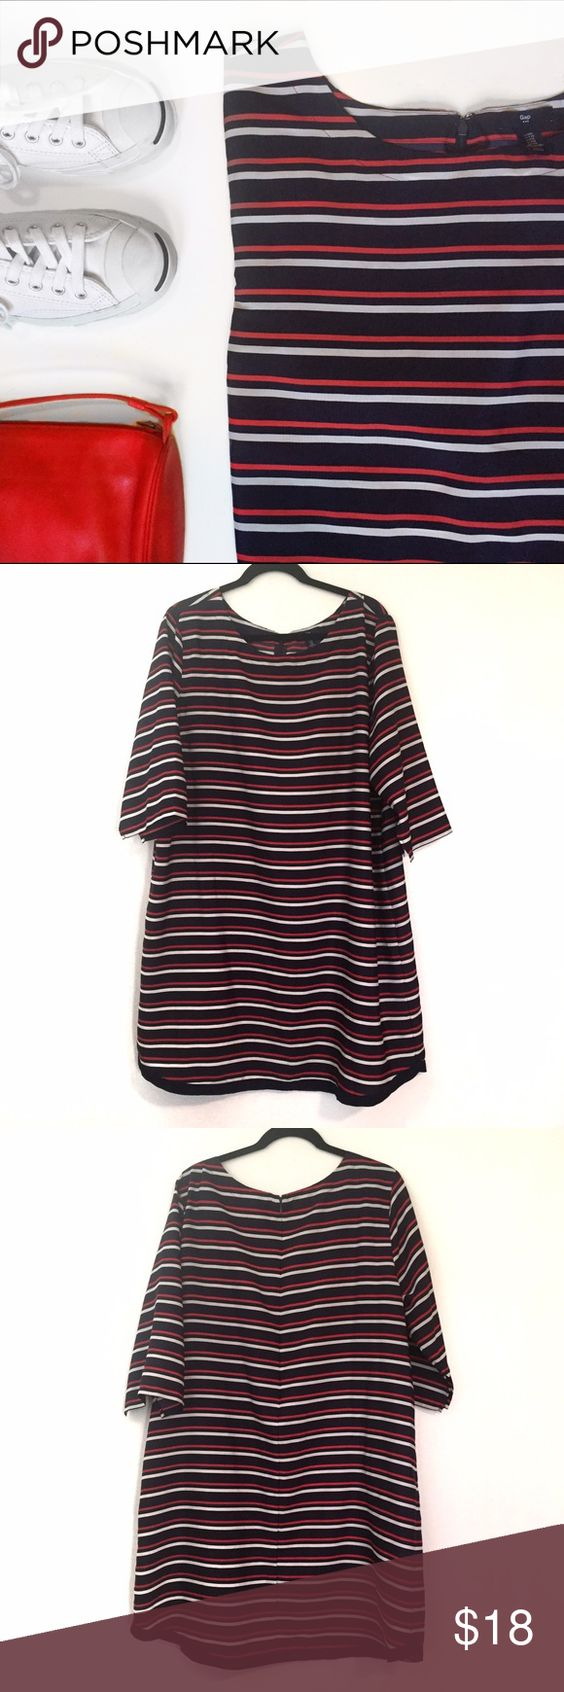 Gap Striped Swing Dress XXL So easy to wear, throw it on with white Chucks, sandals or boots and go! Center zip and hook and eye closure at back. Very gently used, no holes, stains or pilling. Sorry, no trades. GAP Dresses